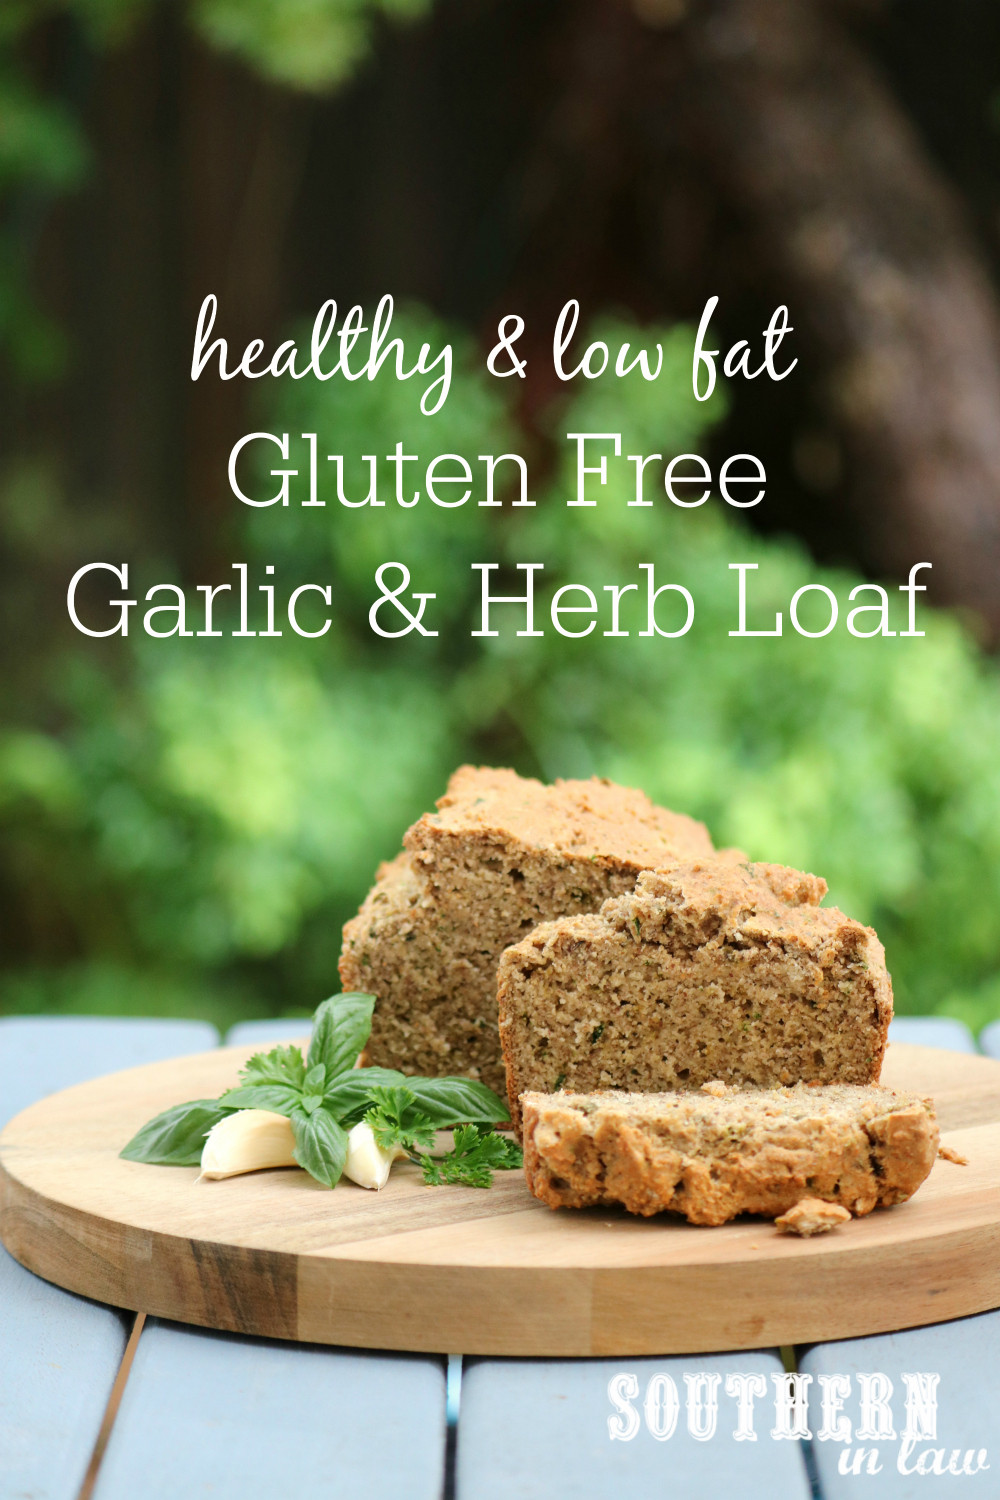 Healthy Gluten Free Bread Recipes  Southern In Law Recipe Gluten Free Garlic and Herb Loaf